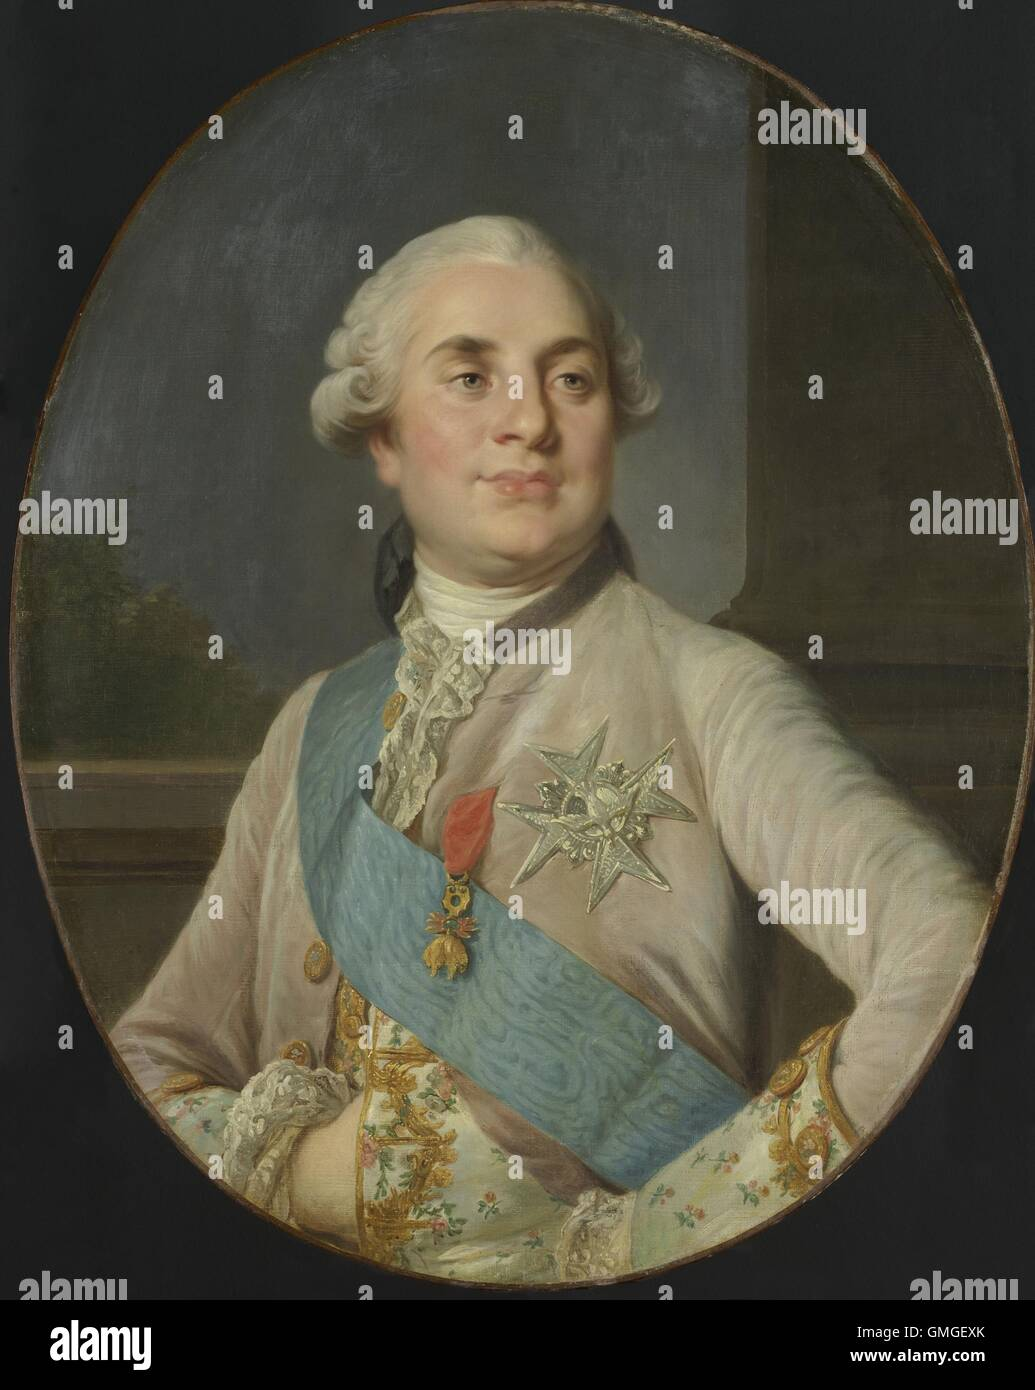 Portrait of Louis XVI, King of France, by Joseph Siffrede Duplessis, c. 1777-89, Dutch painting, oil on canvas. Stock Photo